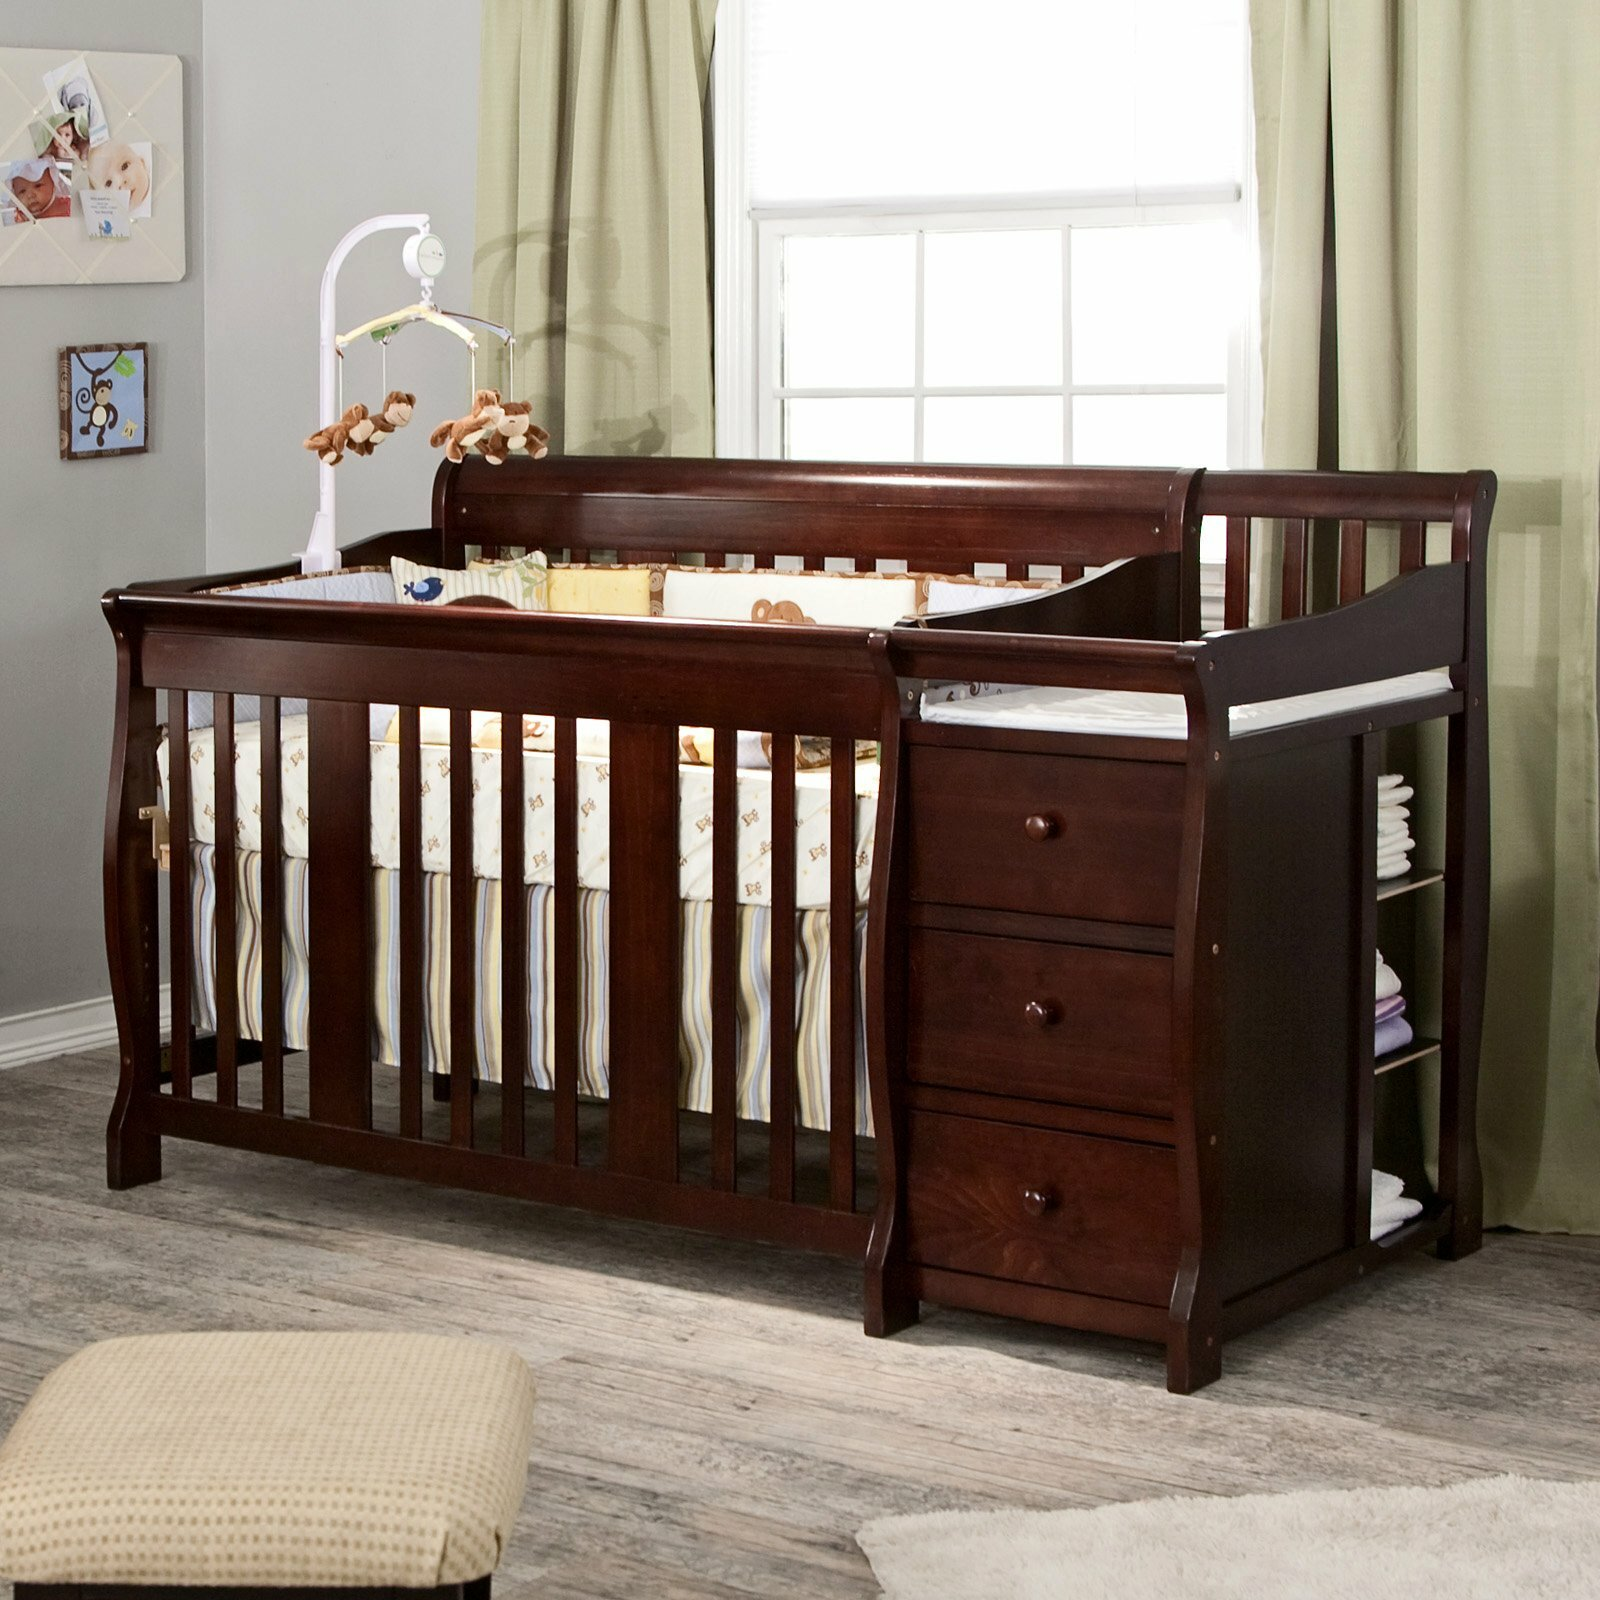 convertible select all table products nurzery and in bradford craft cribs childcraft cherry lifetime crib child changing com